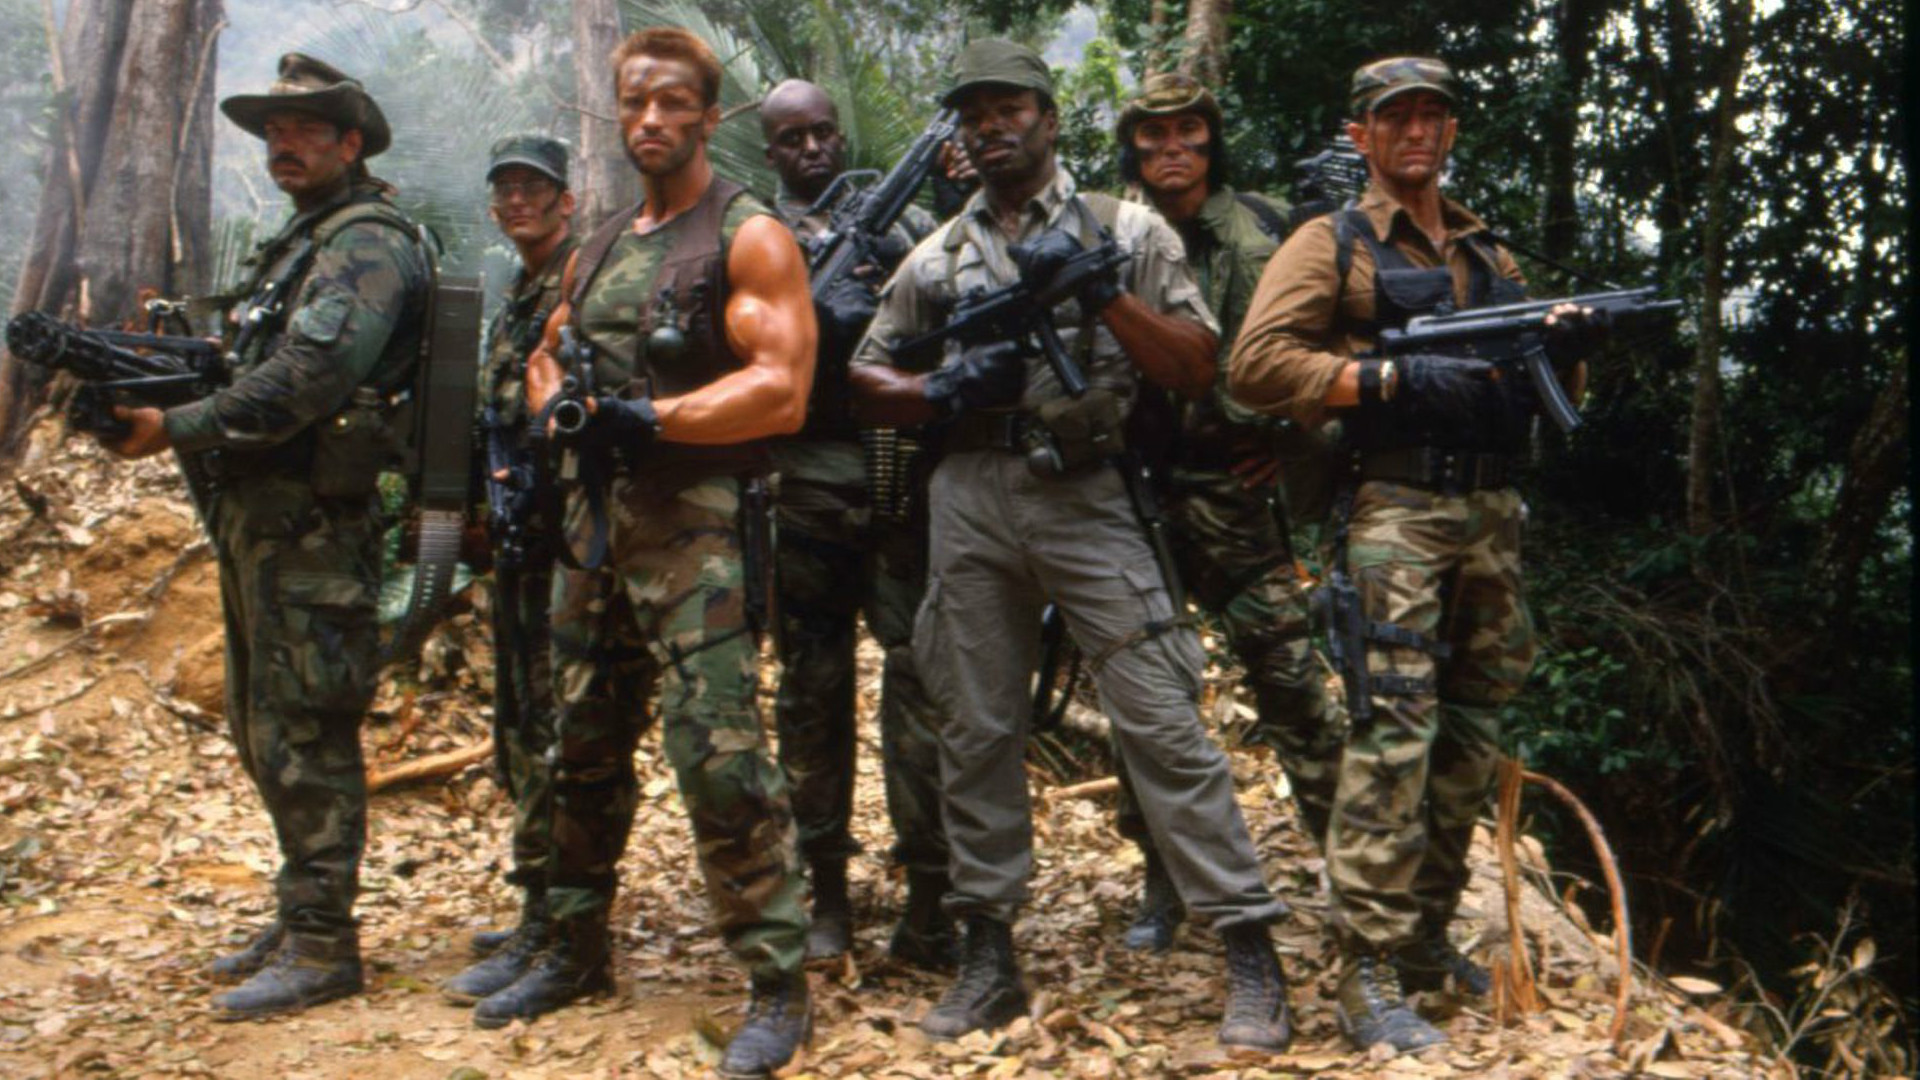 The Writers Of Predator Had Incredible Plans For A Sequel That Never Got Made